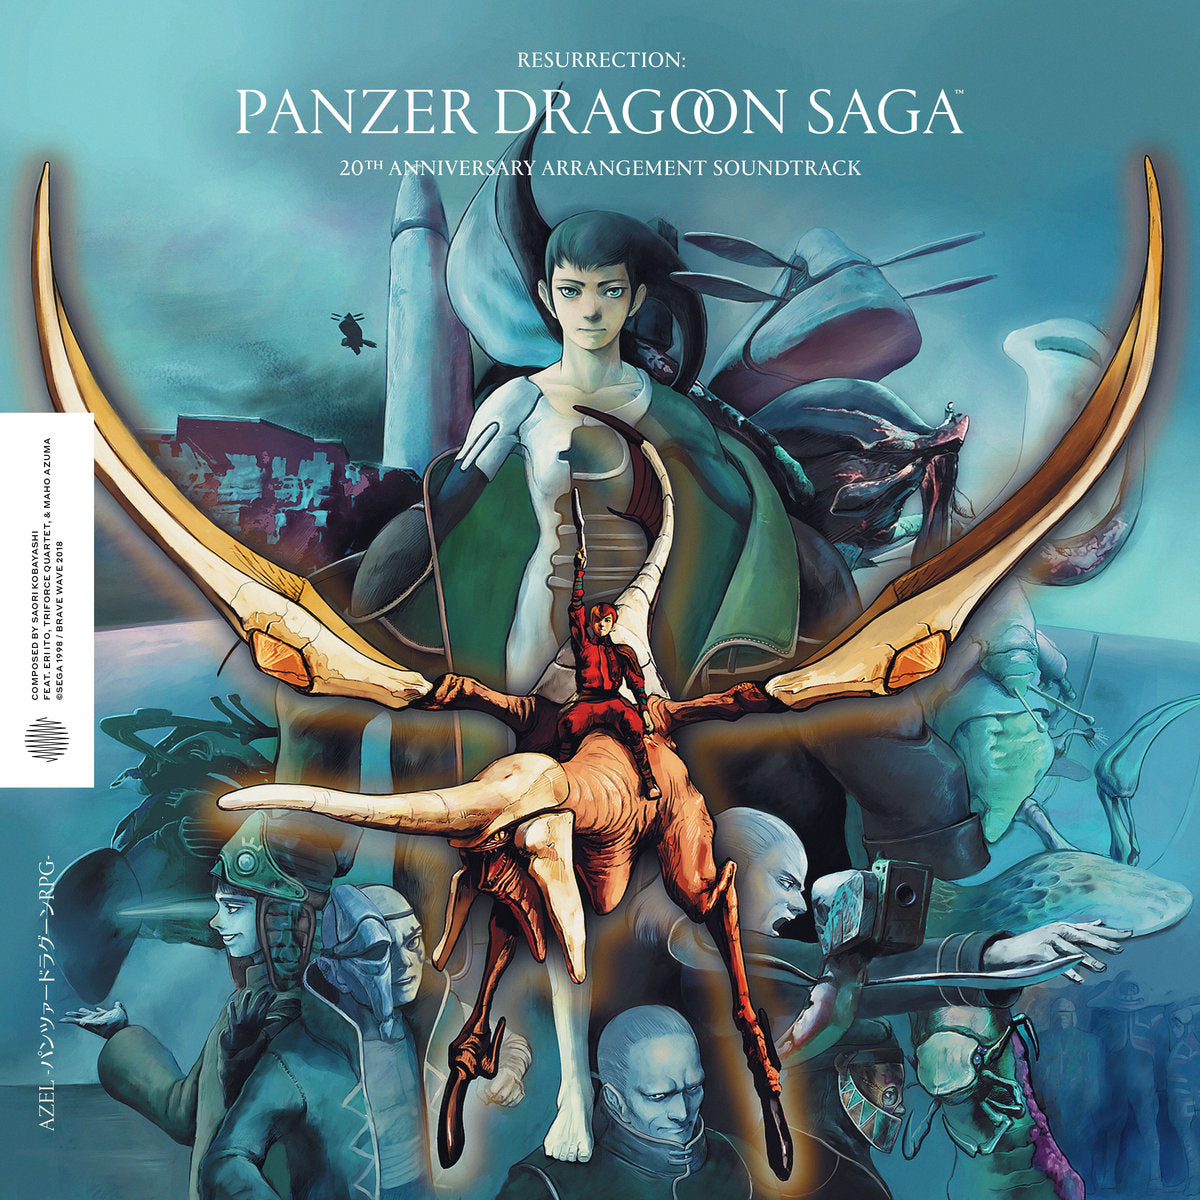 Resurrection: Panzer Dragoon Saga 20th Anniversary Arrangement Soundtrack by Saori Kobayashi and Mariko Nanba